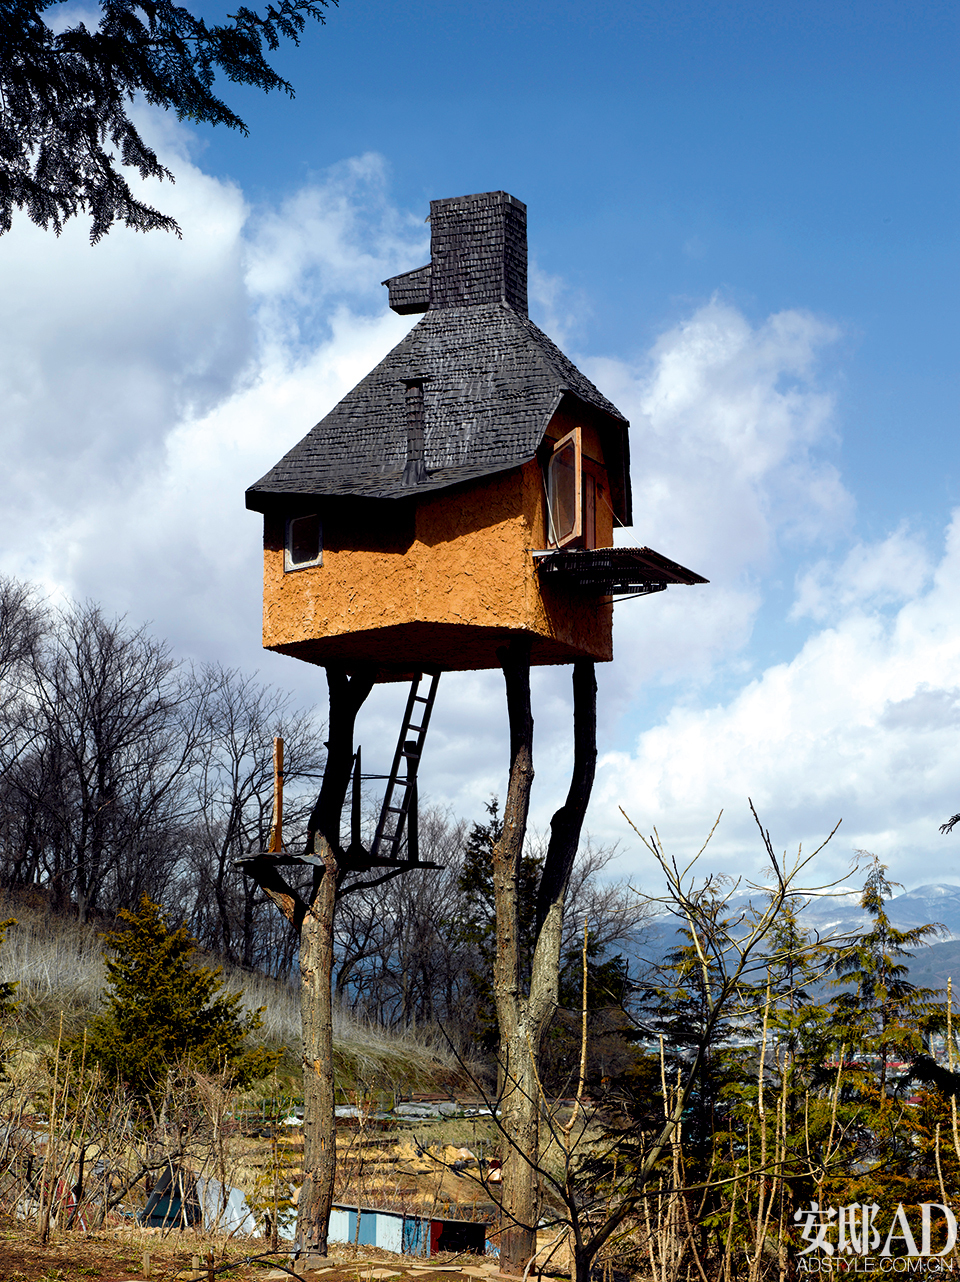 Too Tall Tea House in Nagano, Japan